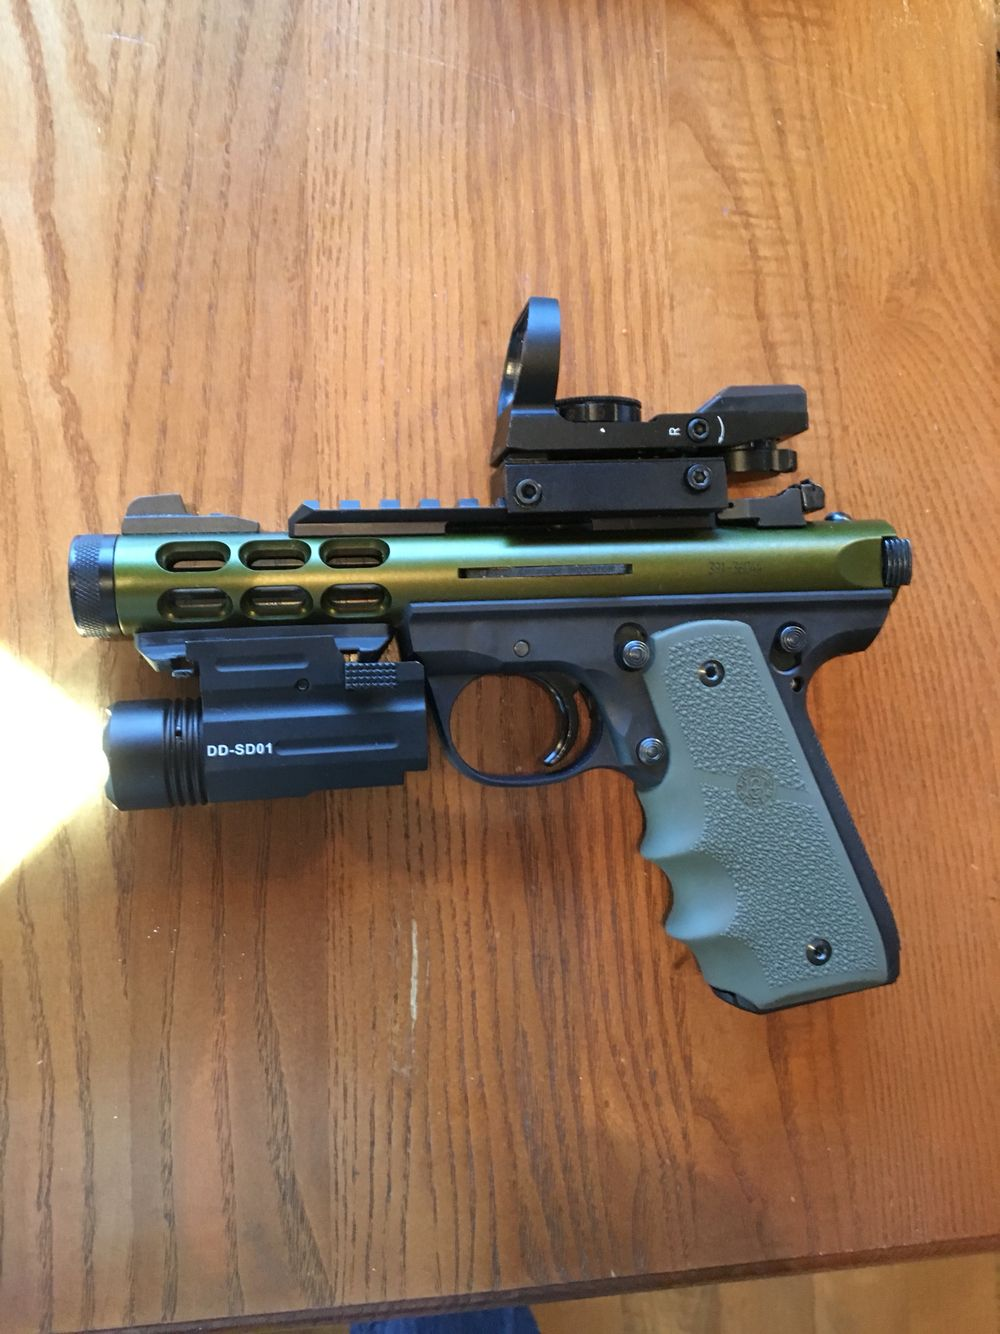 My 22/45 Lite Ruger with Hogue grips, red dot sight and